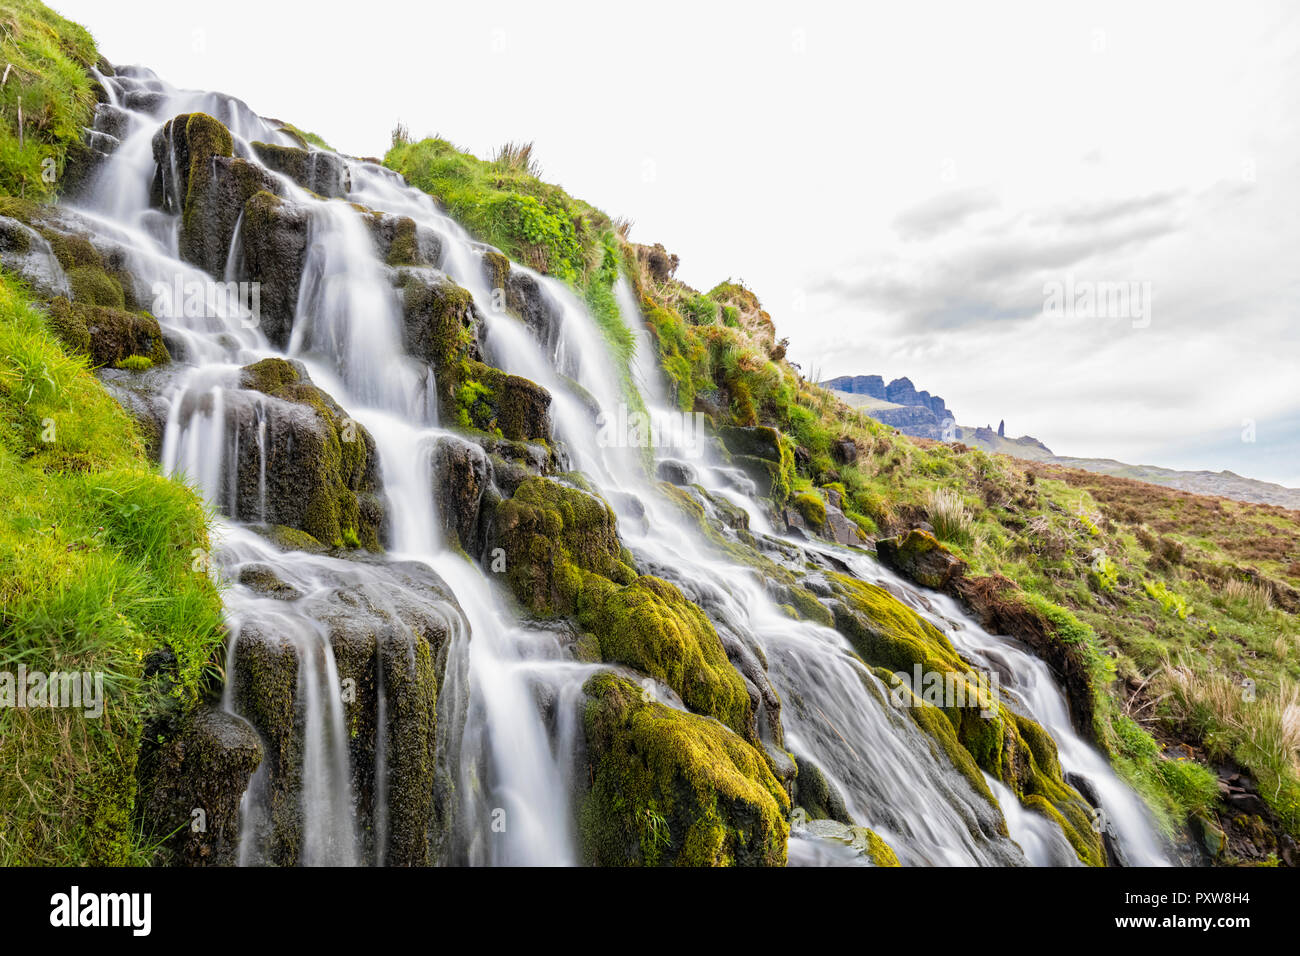 UK, Scotland, Inner Hebrides, Isle of Skye, Brides Veil Waterfall - Stock Image